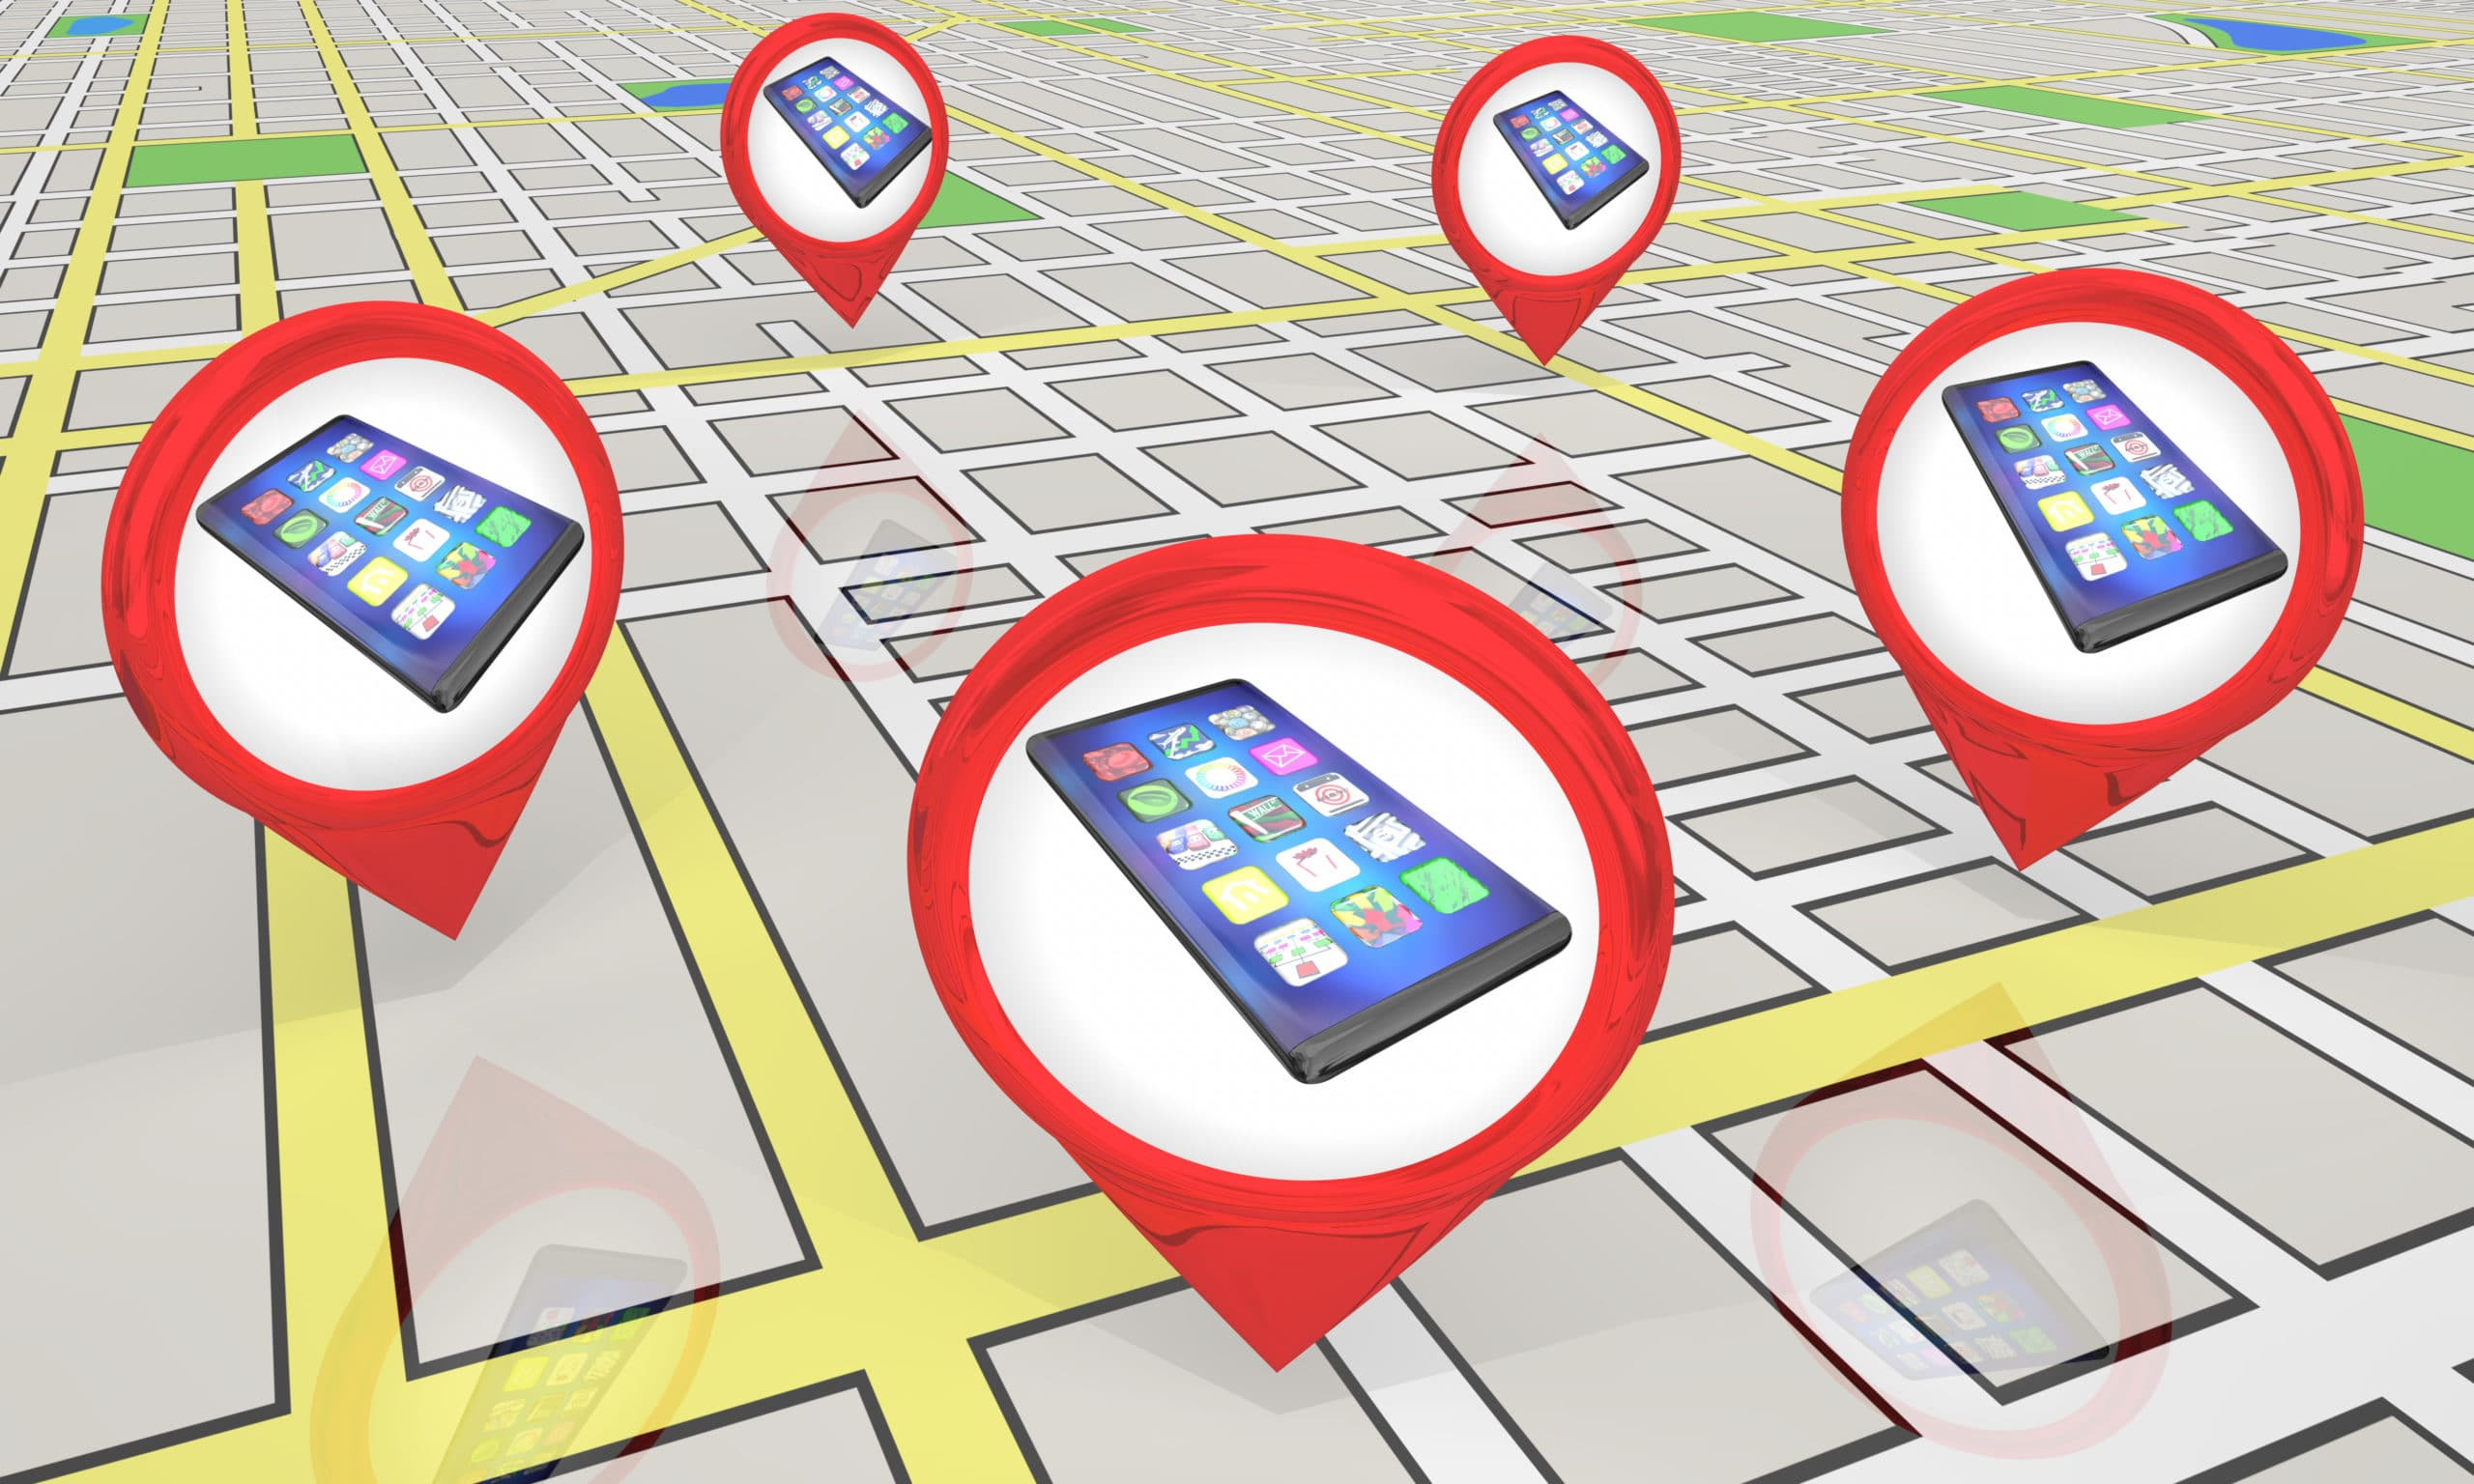 Is geofencing right for my business?